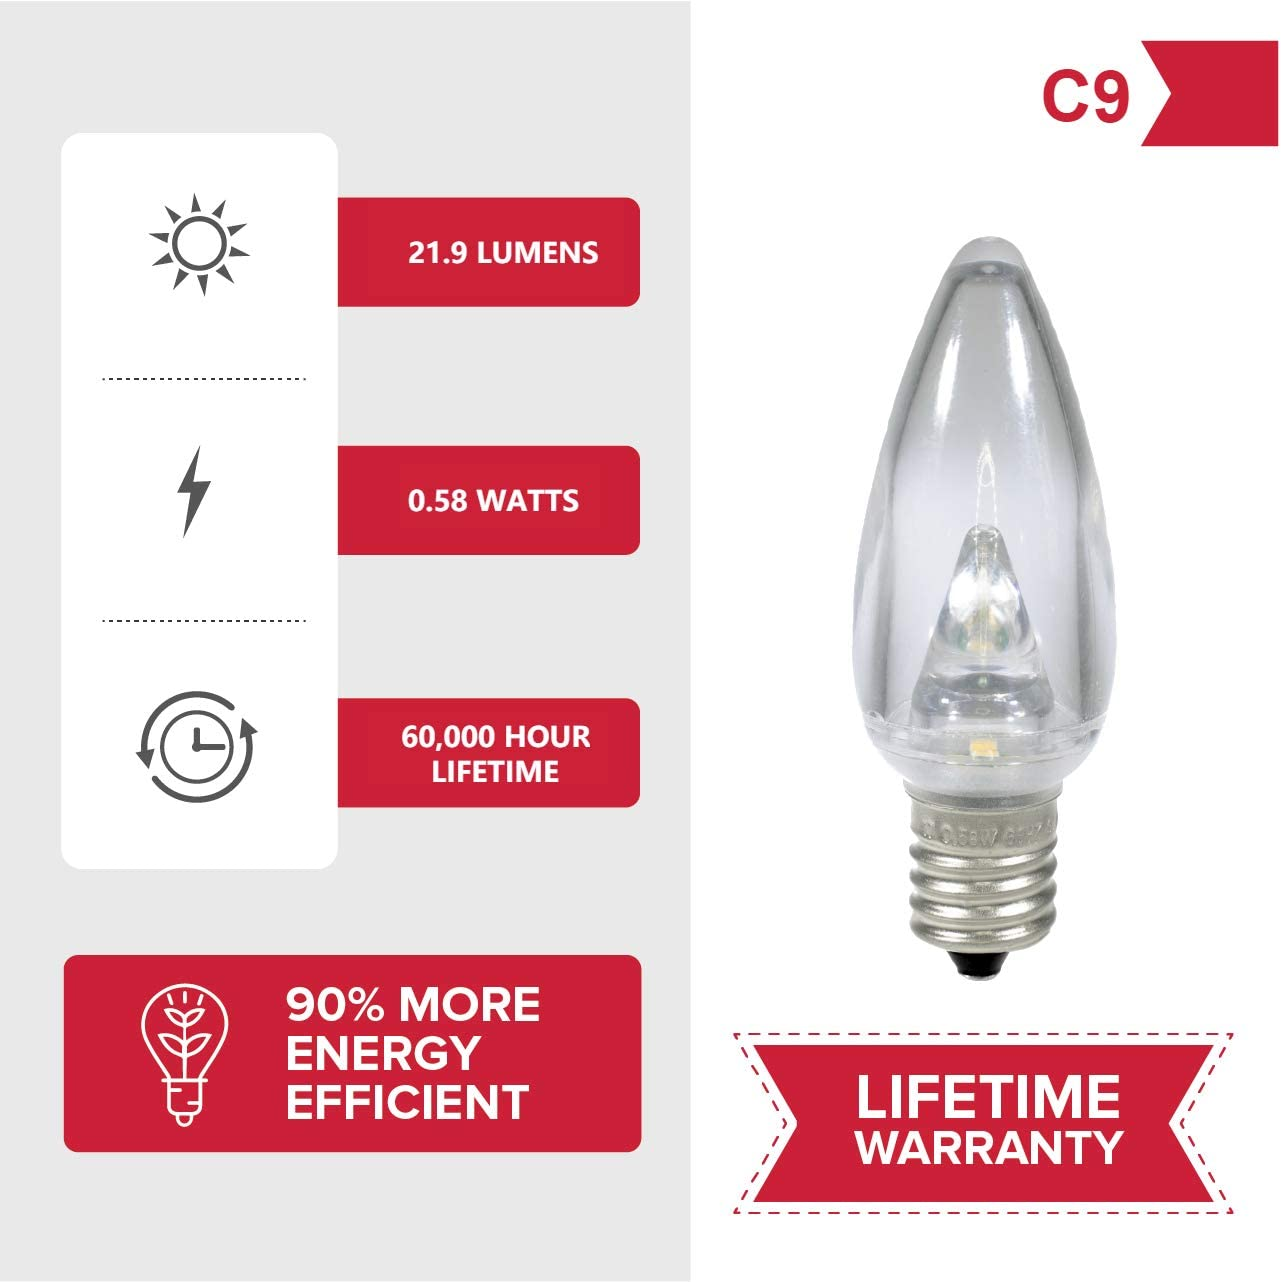 Bulbs 3 Diode 0.58 Watt Energy Efficient Commercial Grade LED Pack of 25 Bulbs Holiday Lighting Outlet LED Smooth C9 Sun Warm White Replacement Christmas Light Bulbs for E17 Sockets